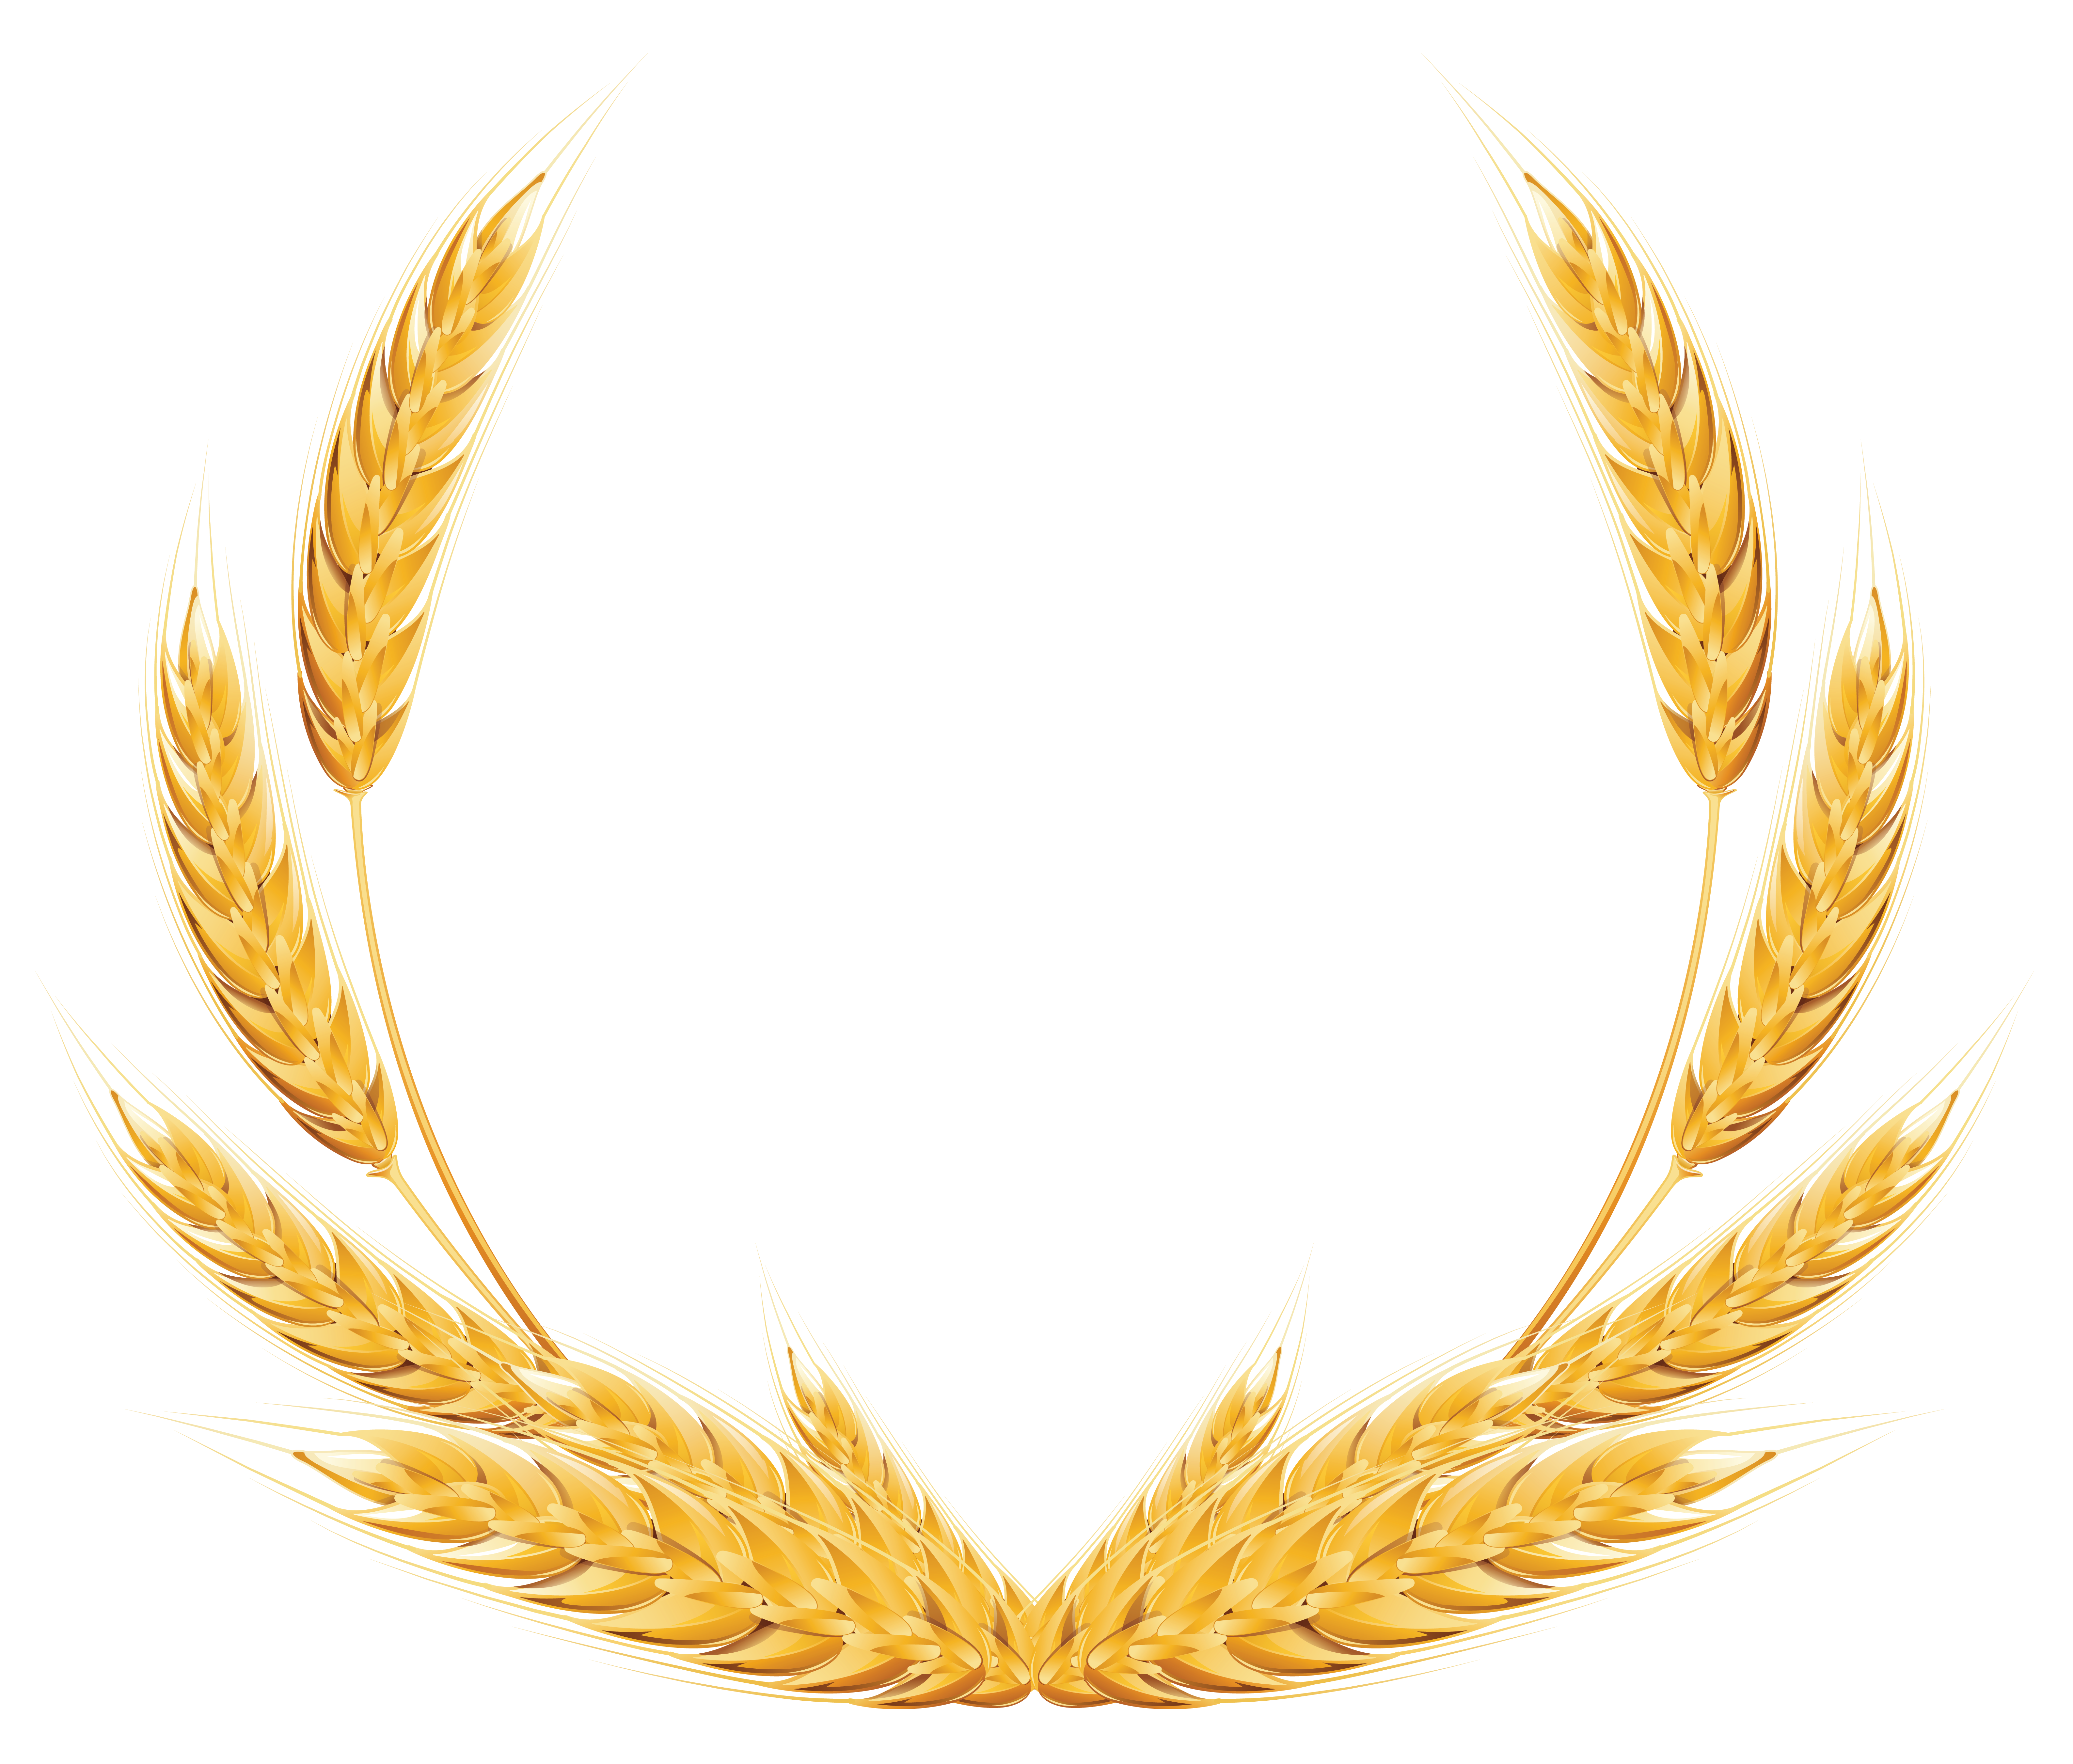 Wheat Decoration PNG Clipart Image